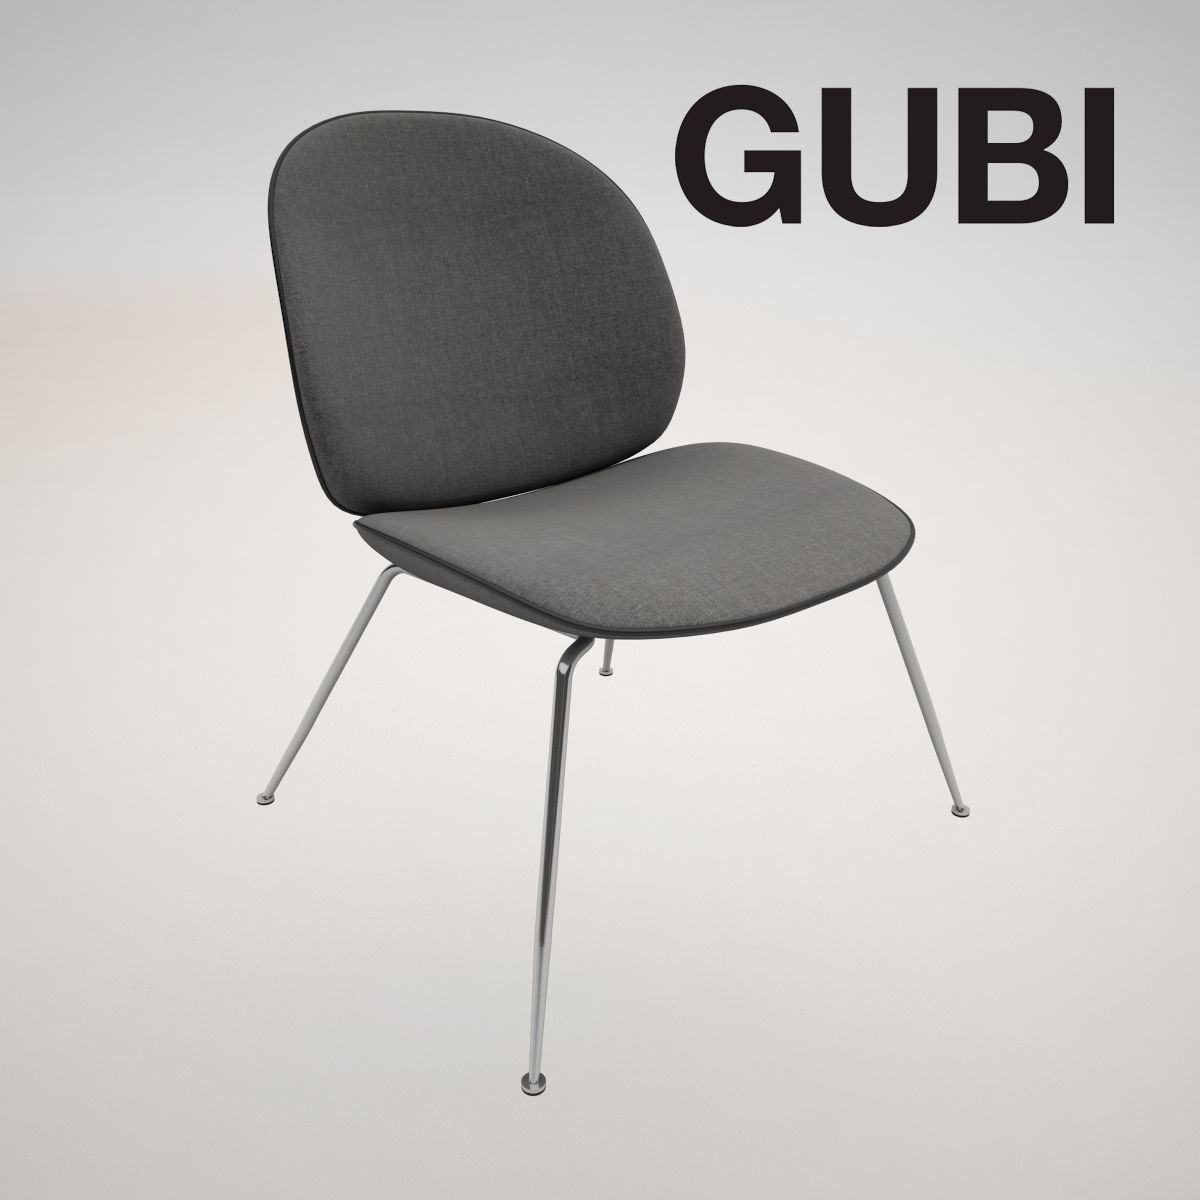 LOUNGE CHAIR BEETLE BY GUBY